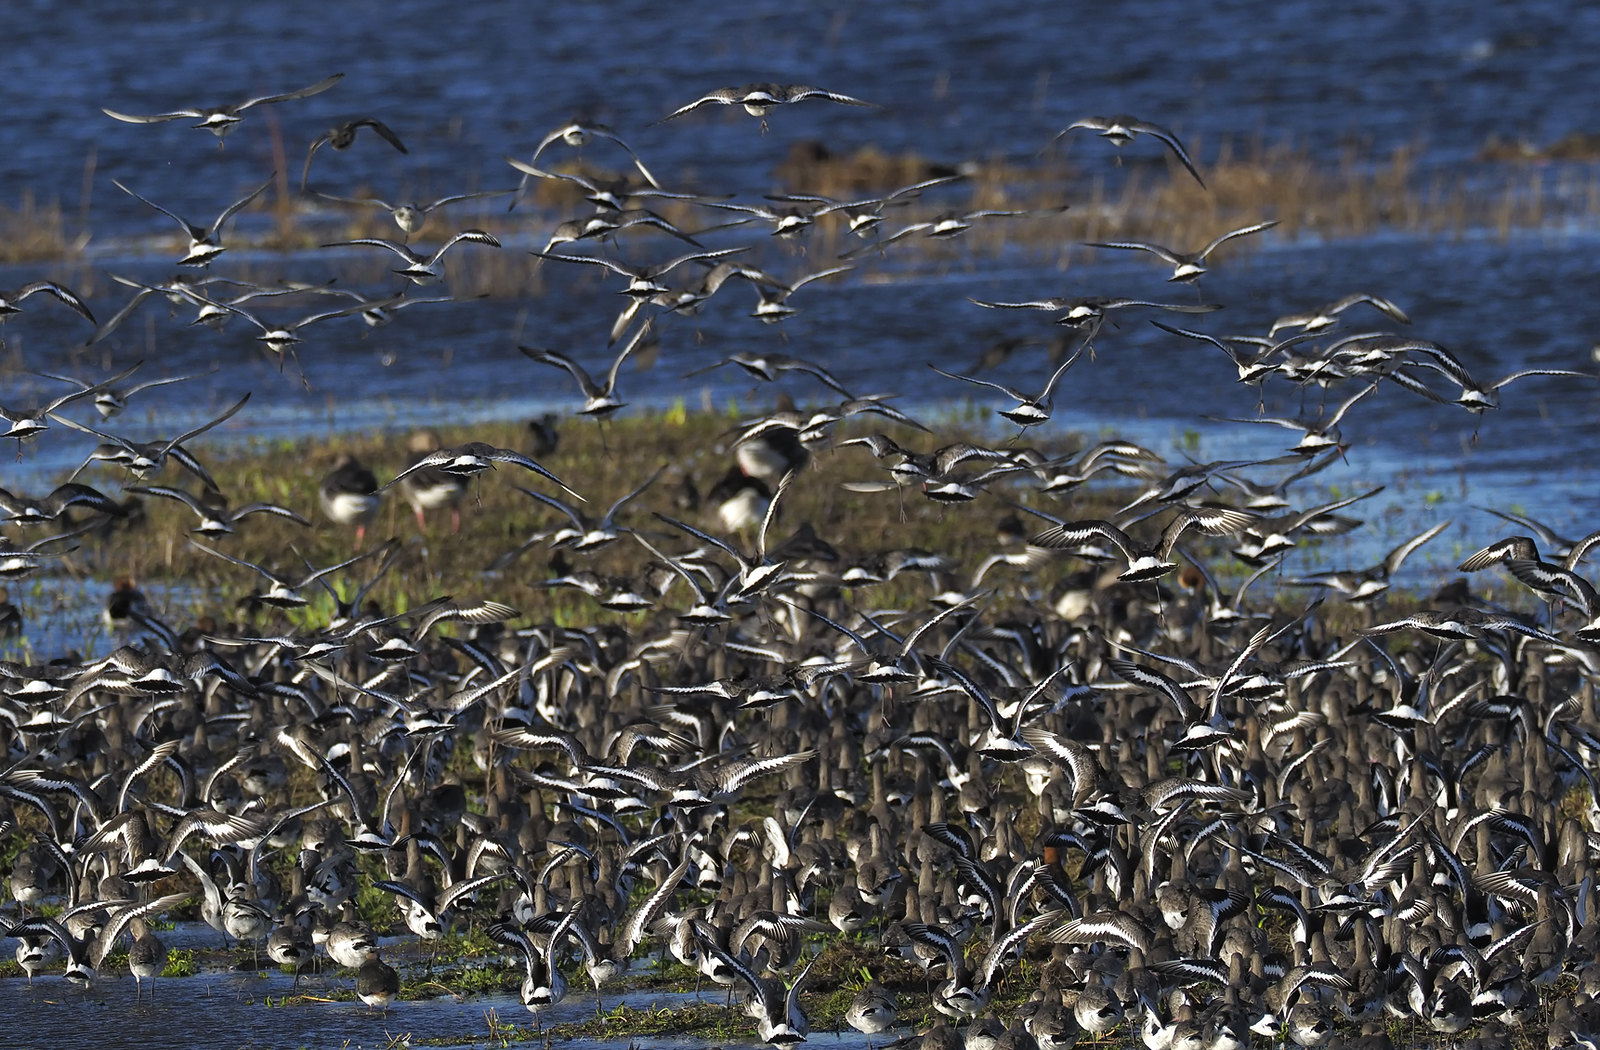 That's a lot of Black-tailed Godwits!